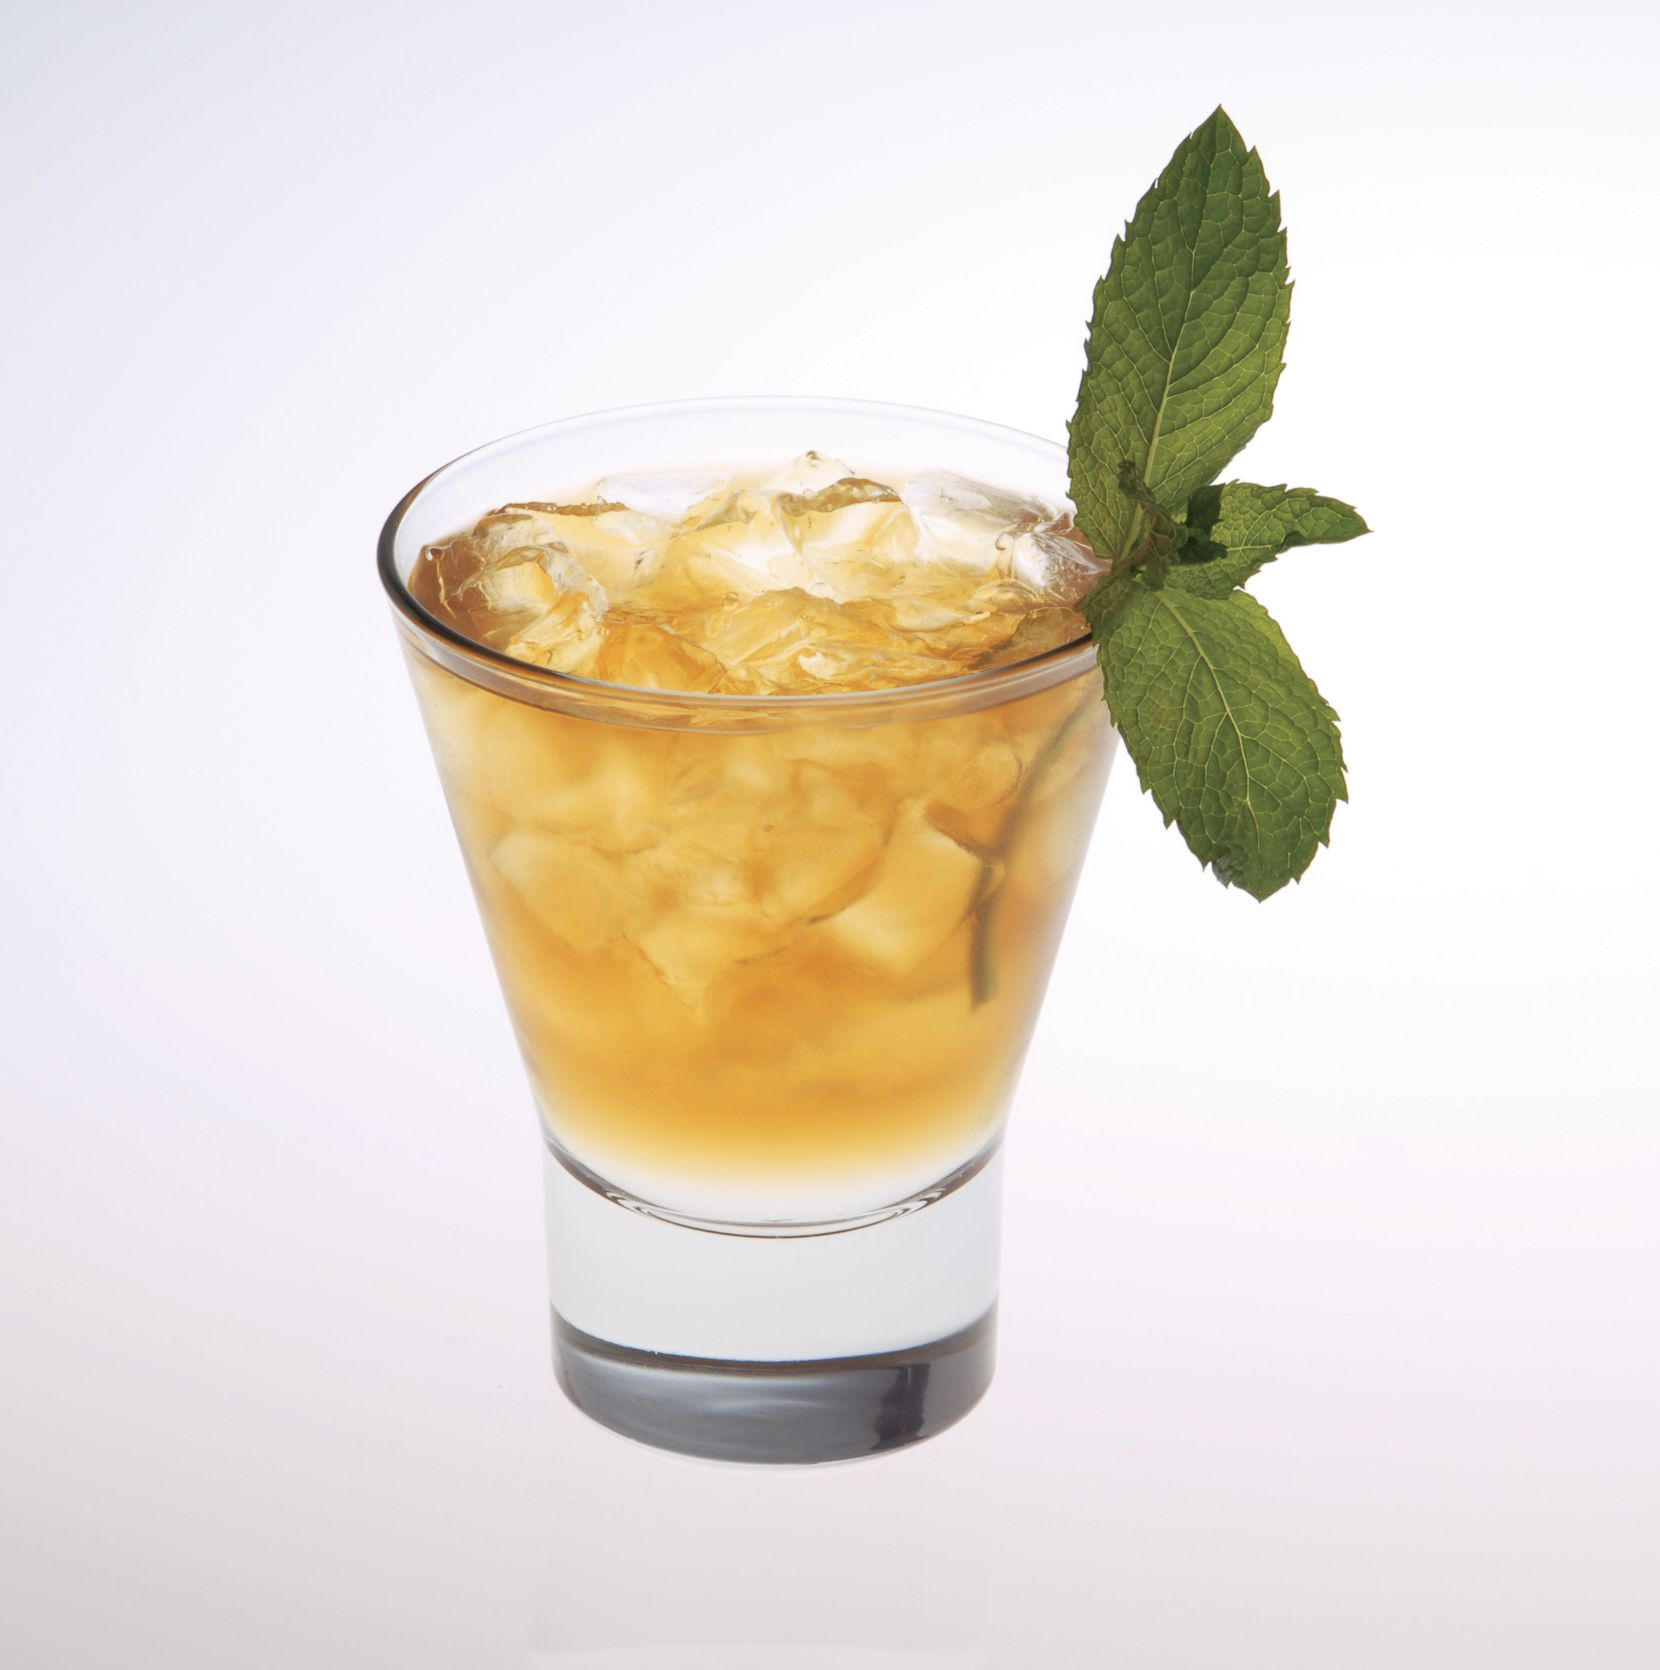 Southern Sweet Tea-quila